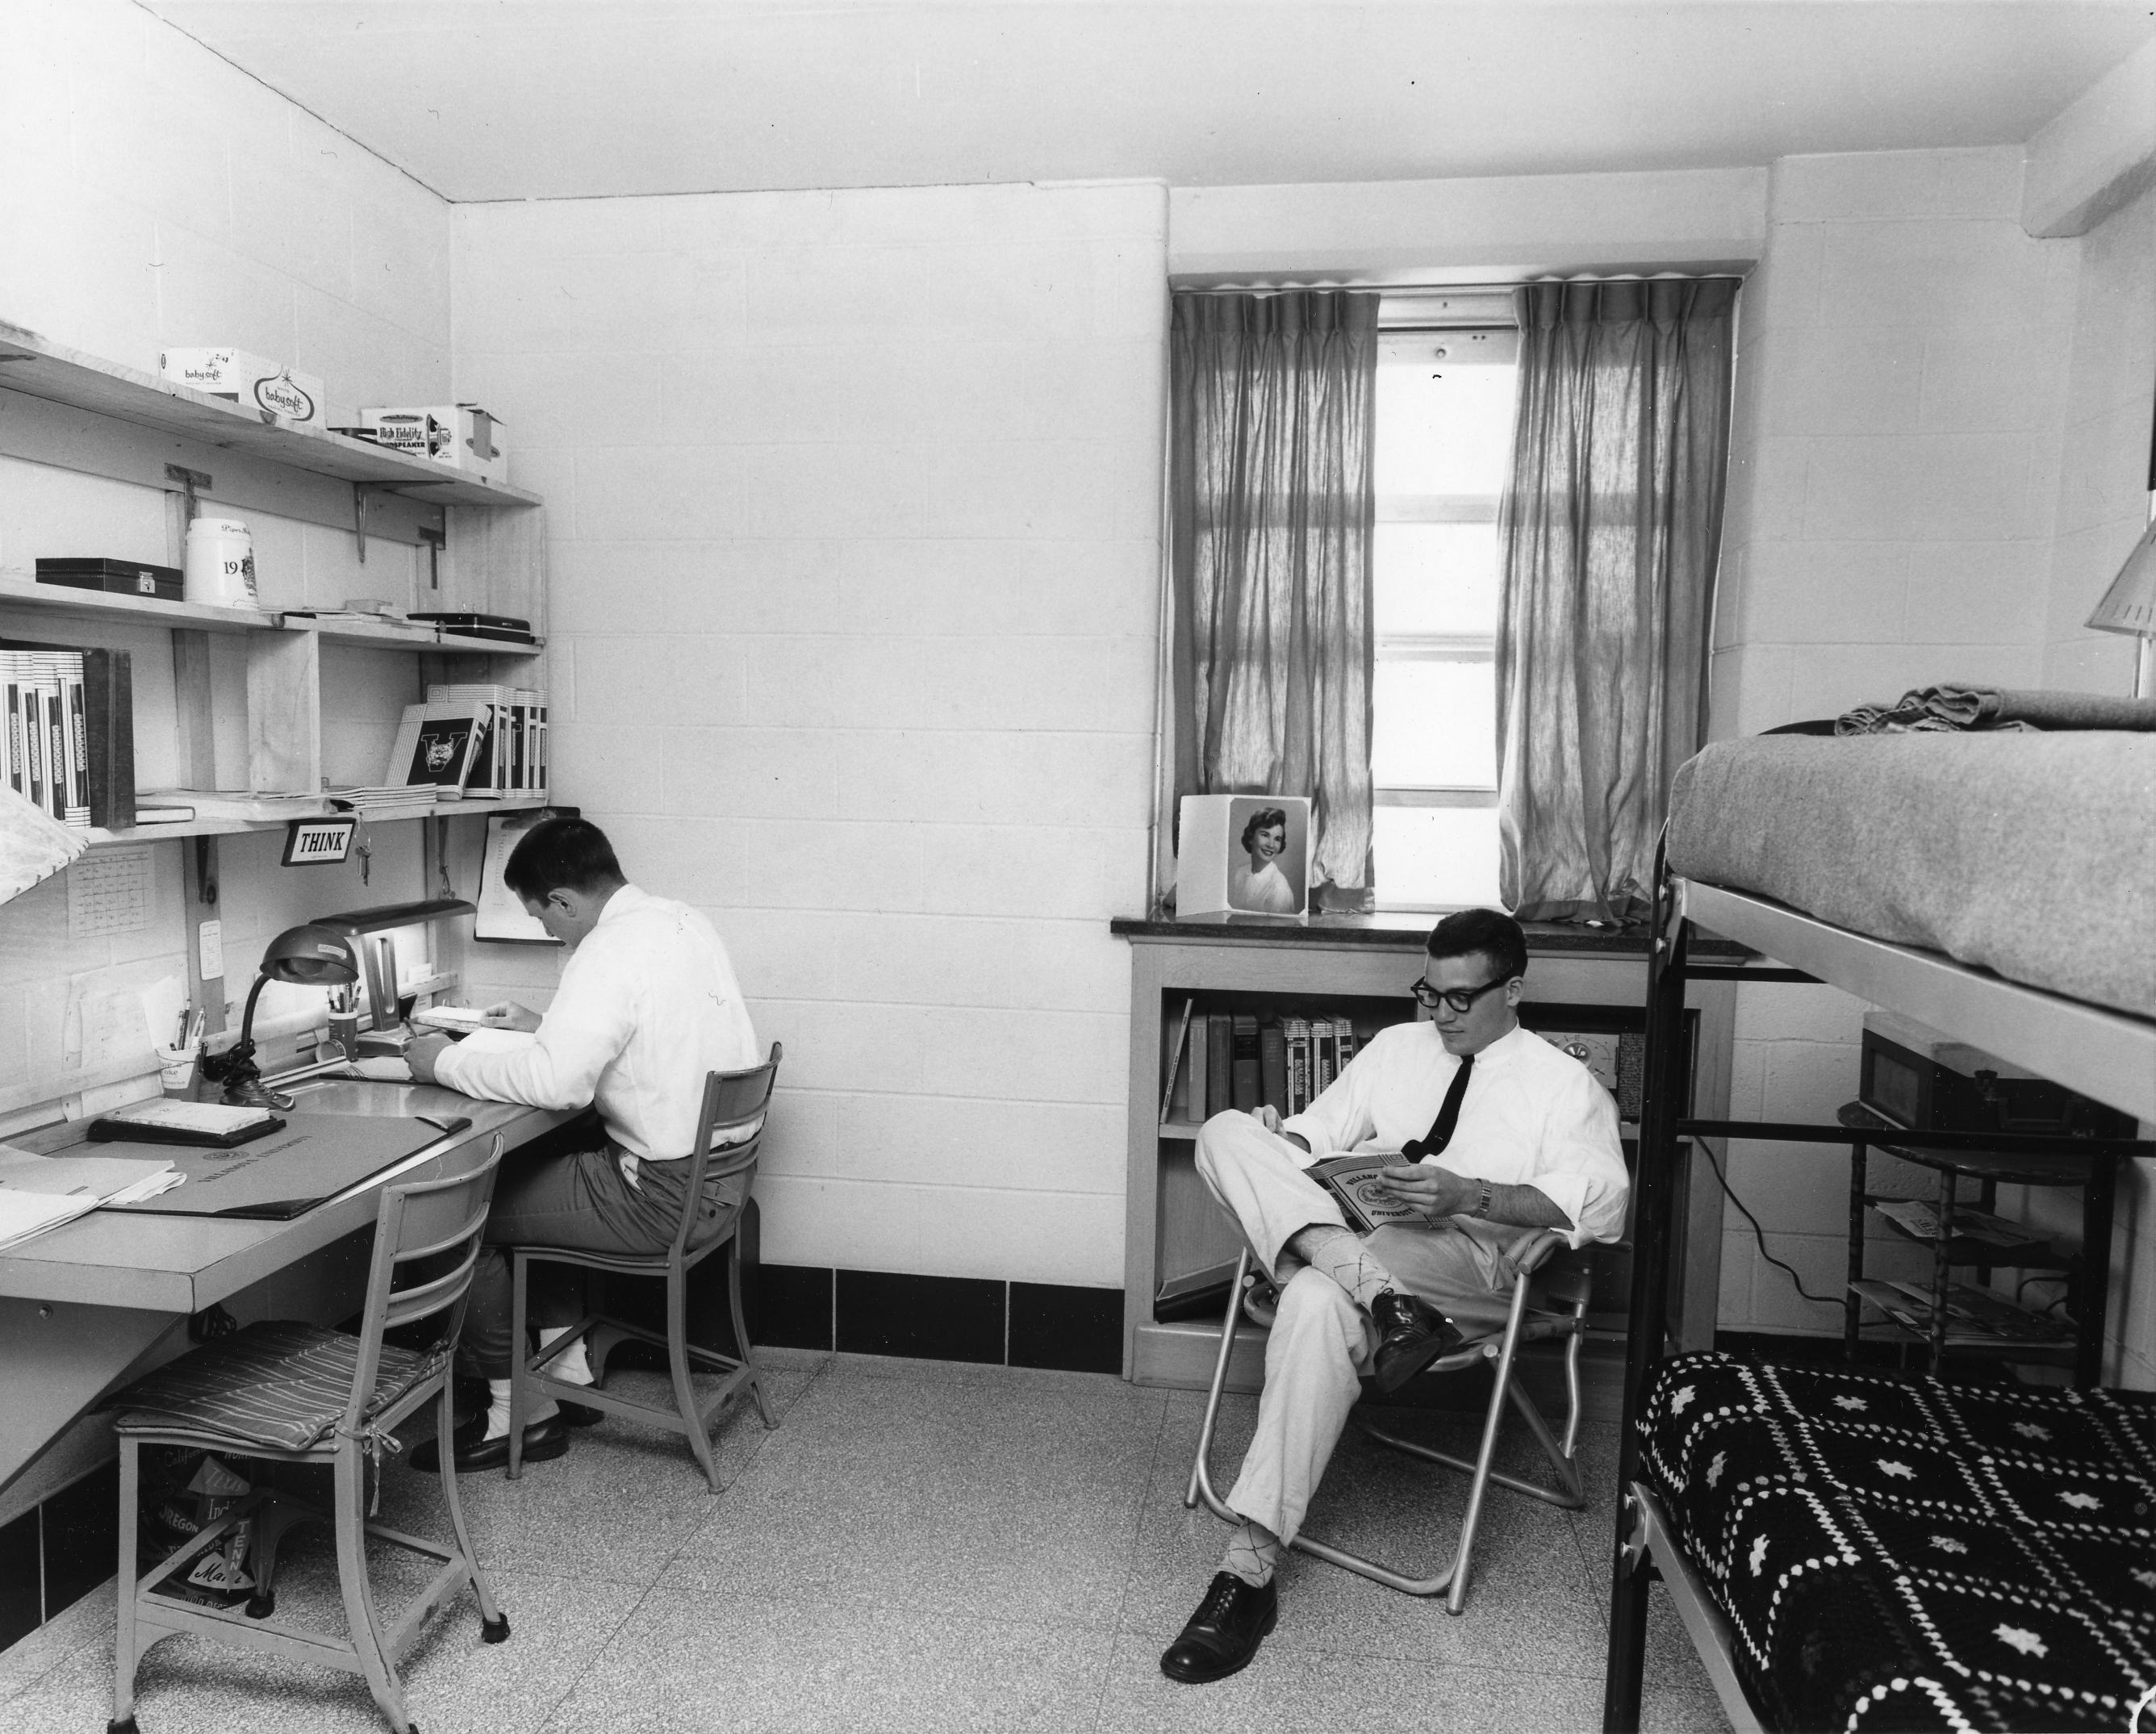 Residents students in Sheehan Hall, 1960